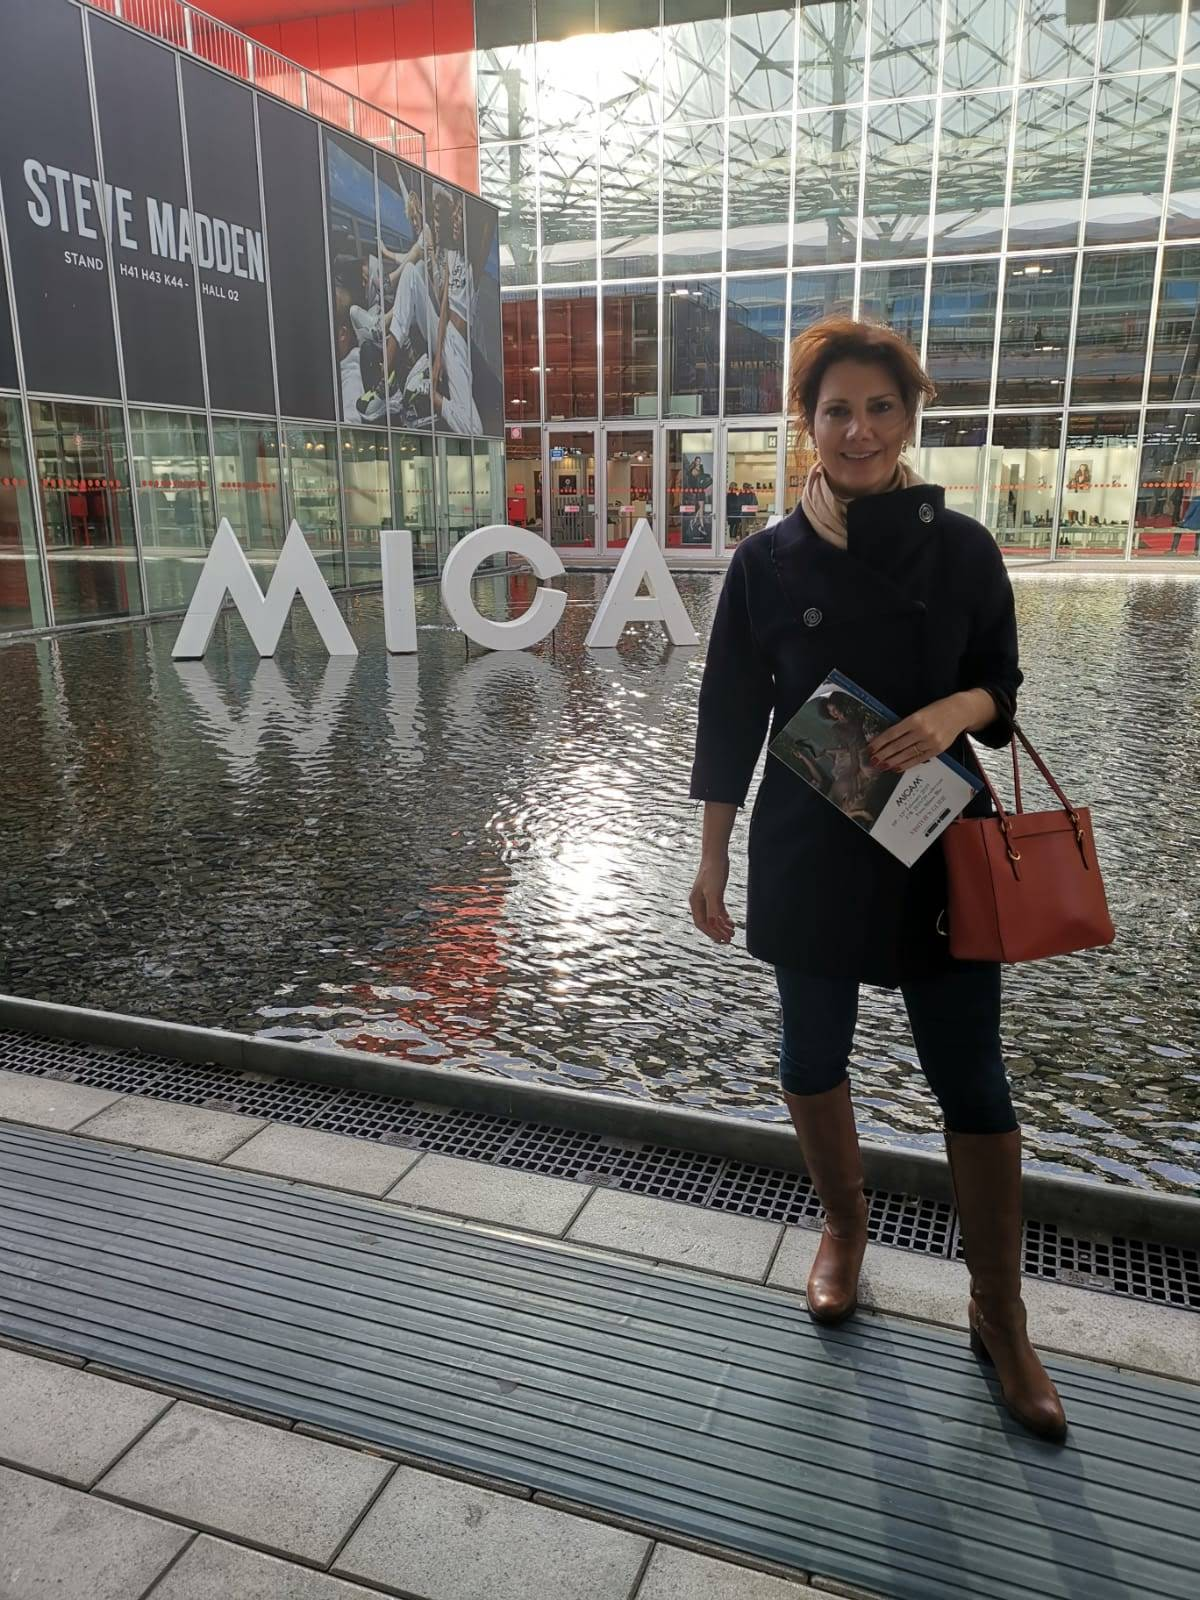 At the MICAM, Milan's famous shoe trade fair